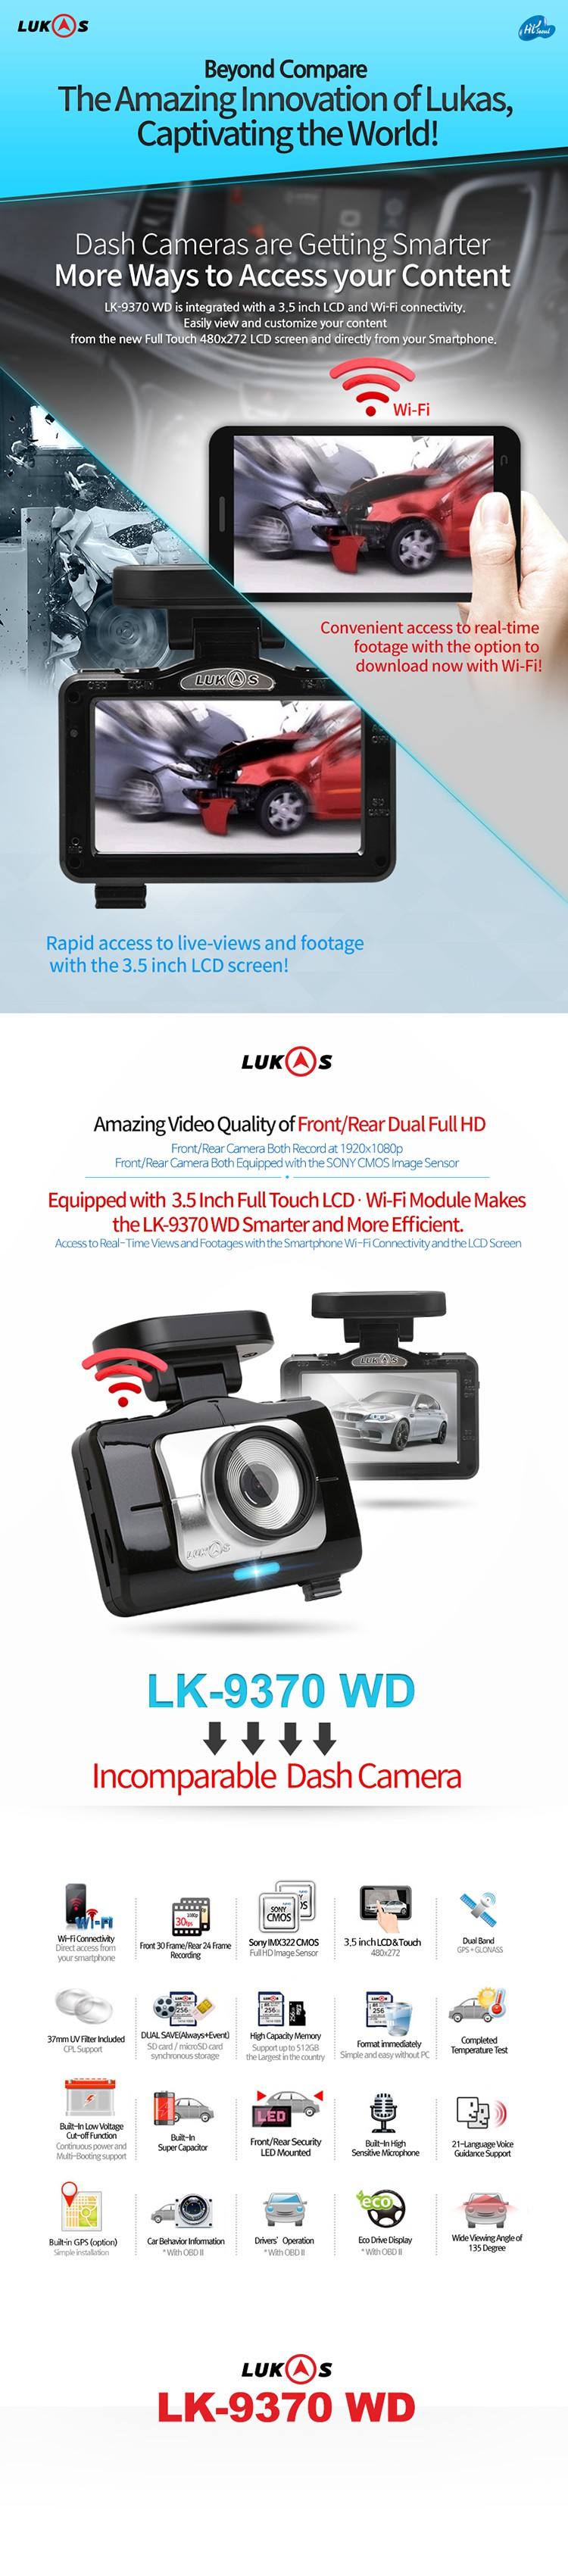 Cop A Feel as well Product detail additionally Kartonnenkokers foto kokers1 together with Dashcam 9370wd as well bearvault. on product info